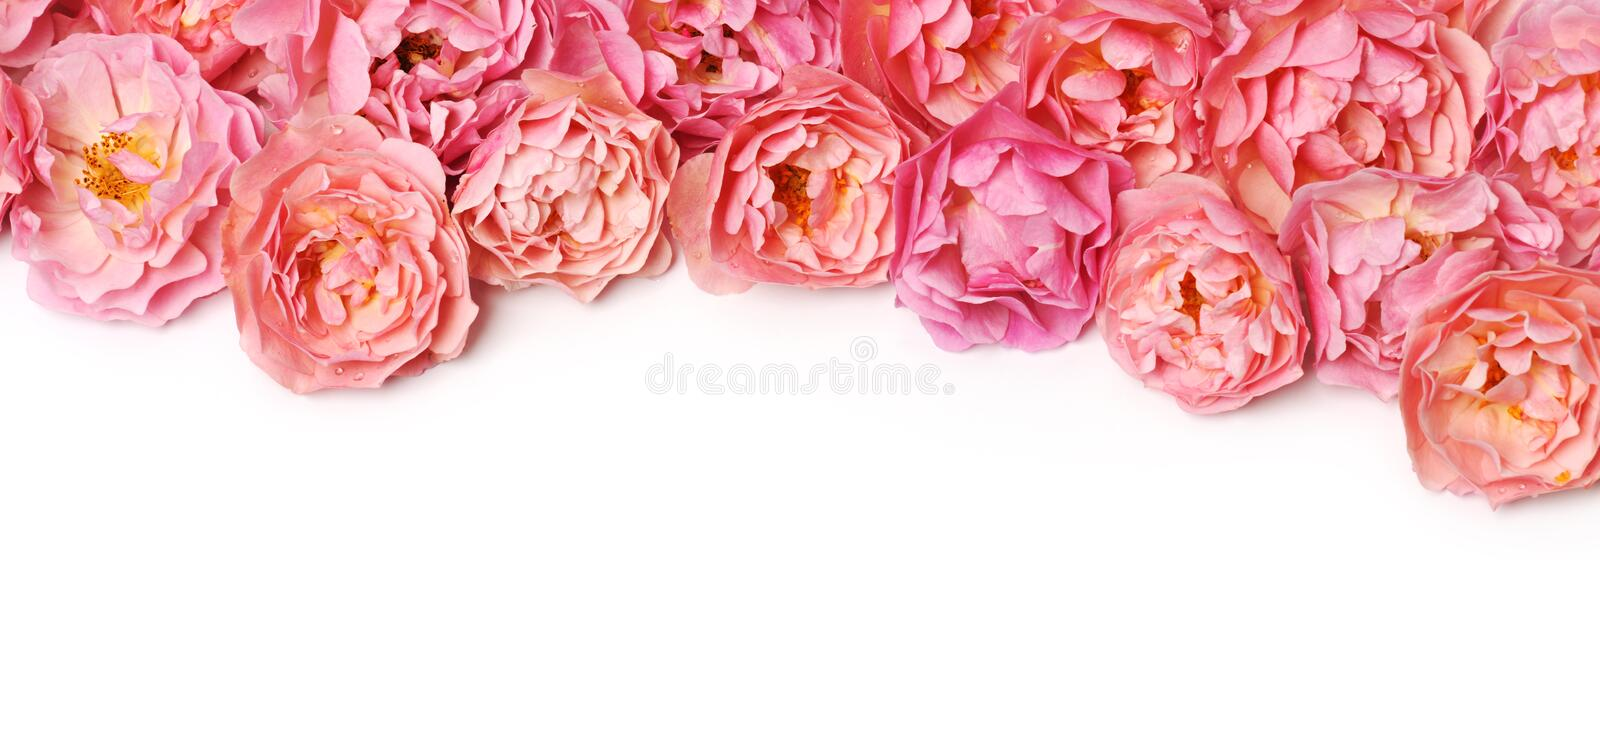 Border of pink roses. On white background royalty free stock photography